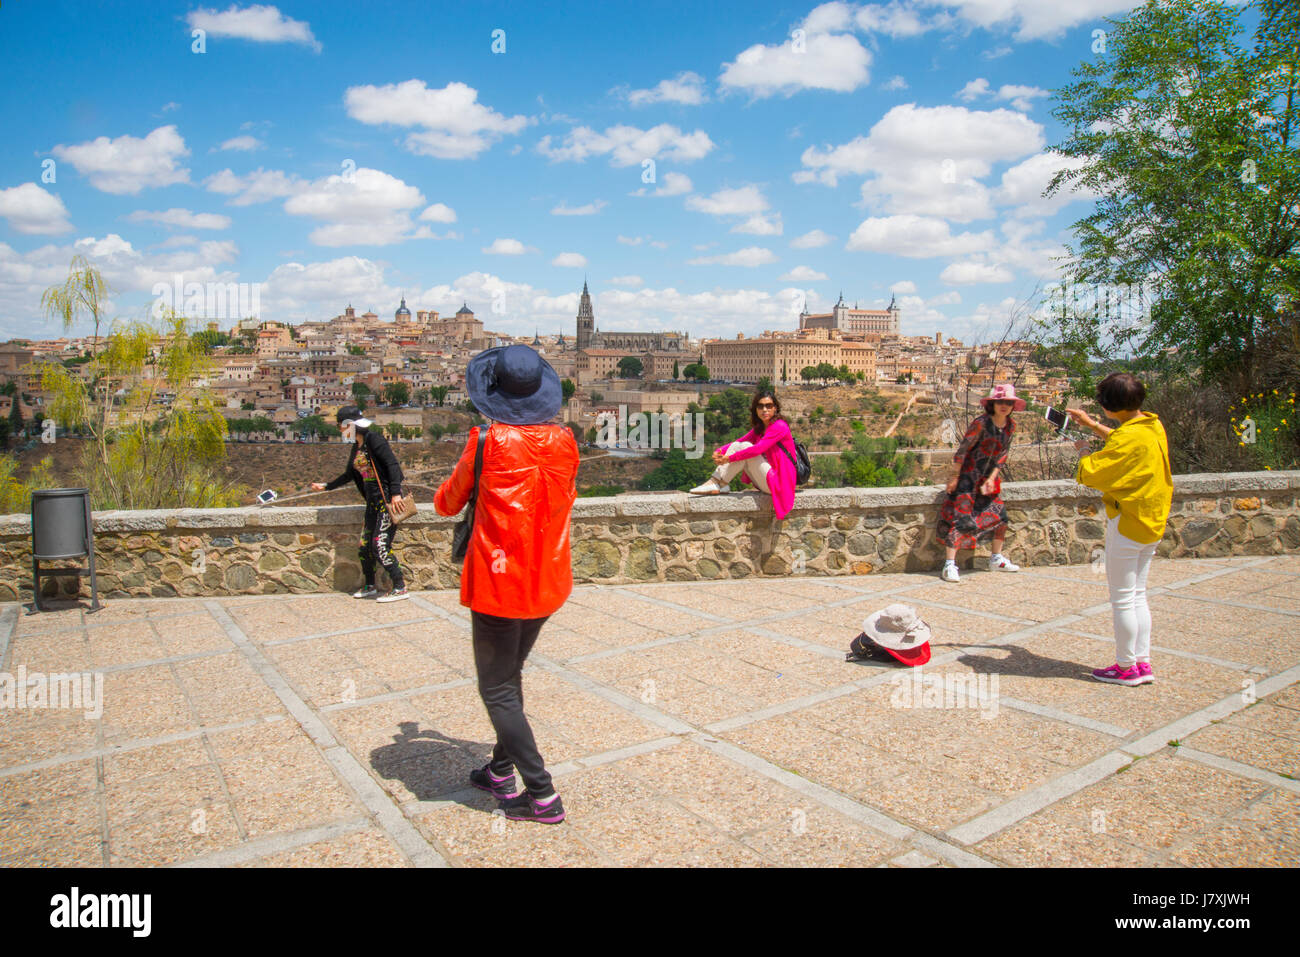 Group of Japanese women taking photos at the viewpoint. Toledo, Spain. - Stock Image